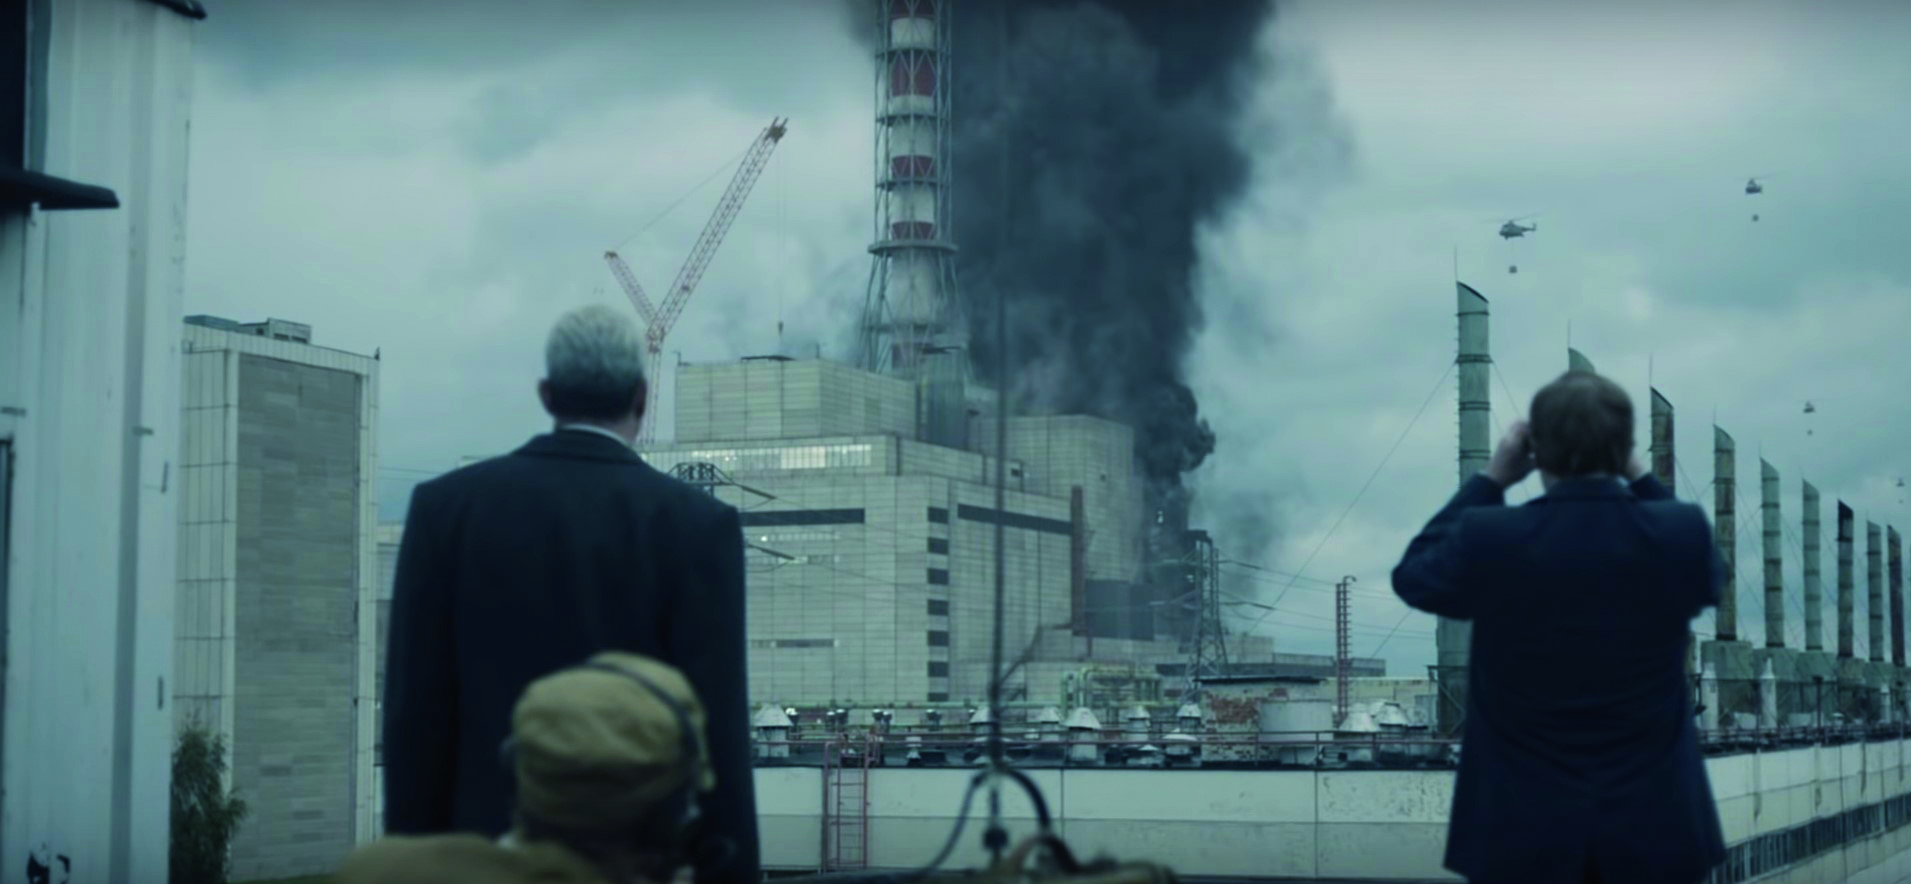 Chornobyl Gets the HBO Treatment